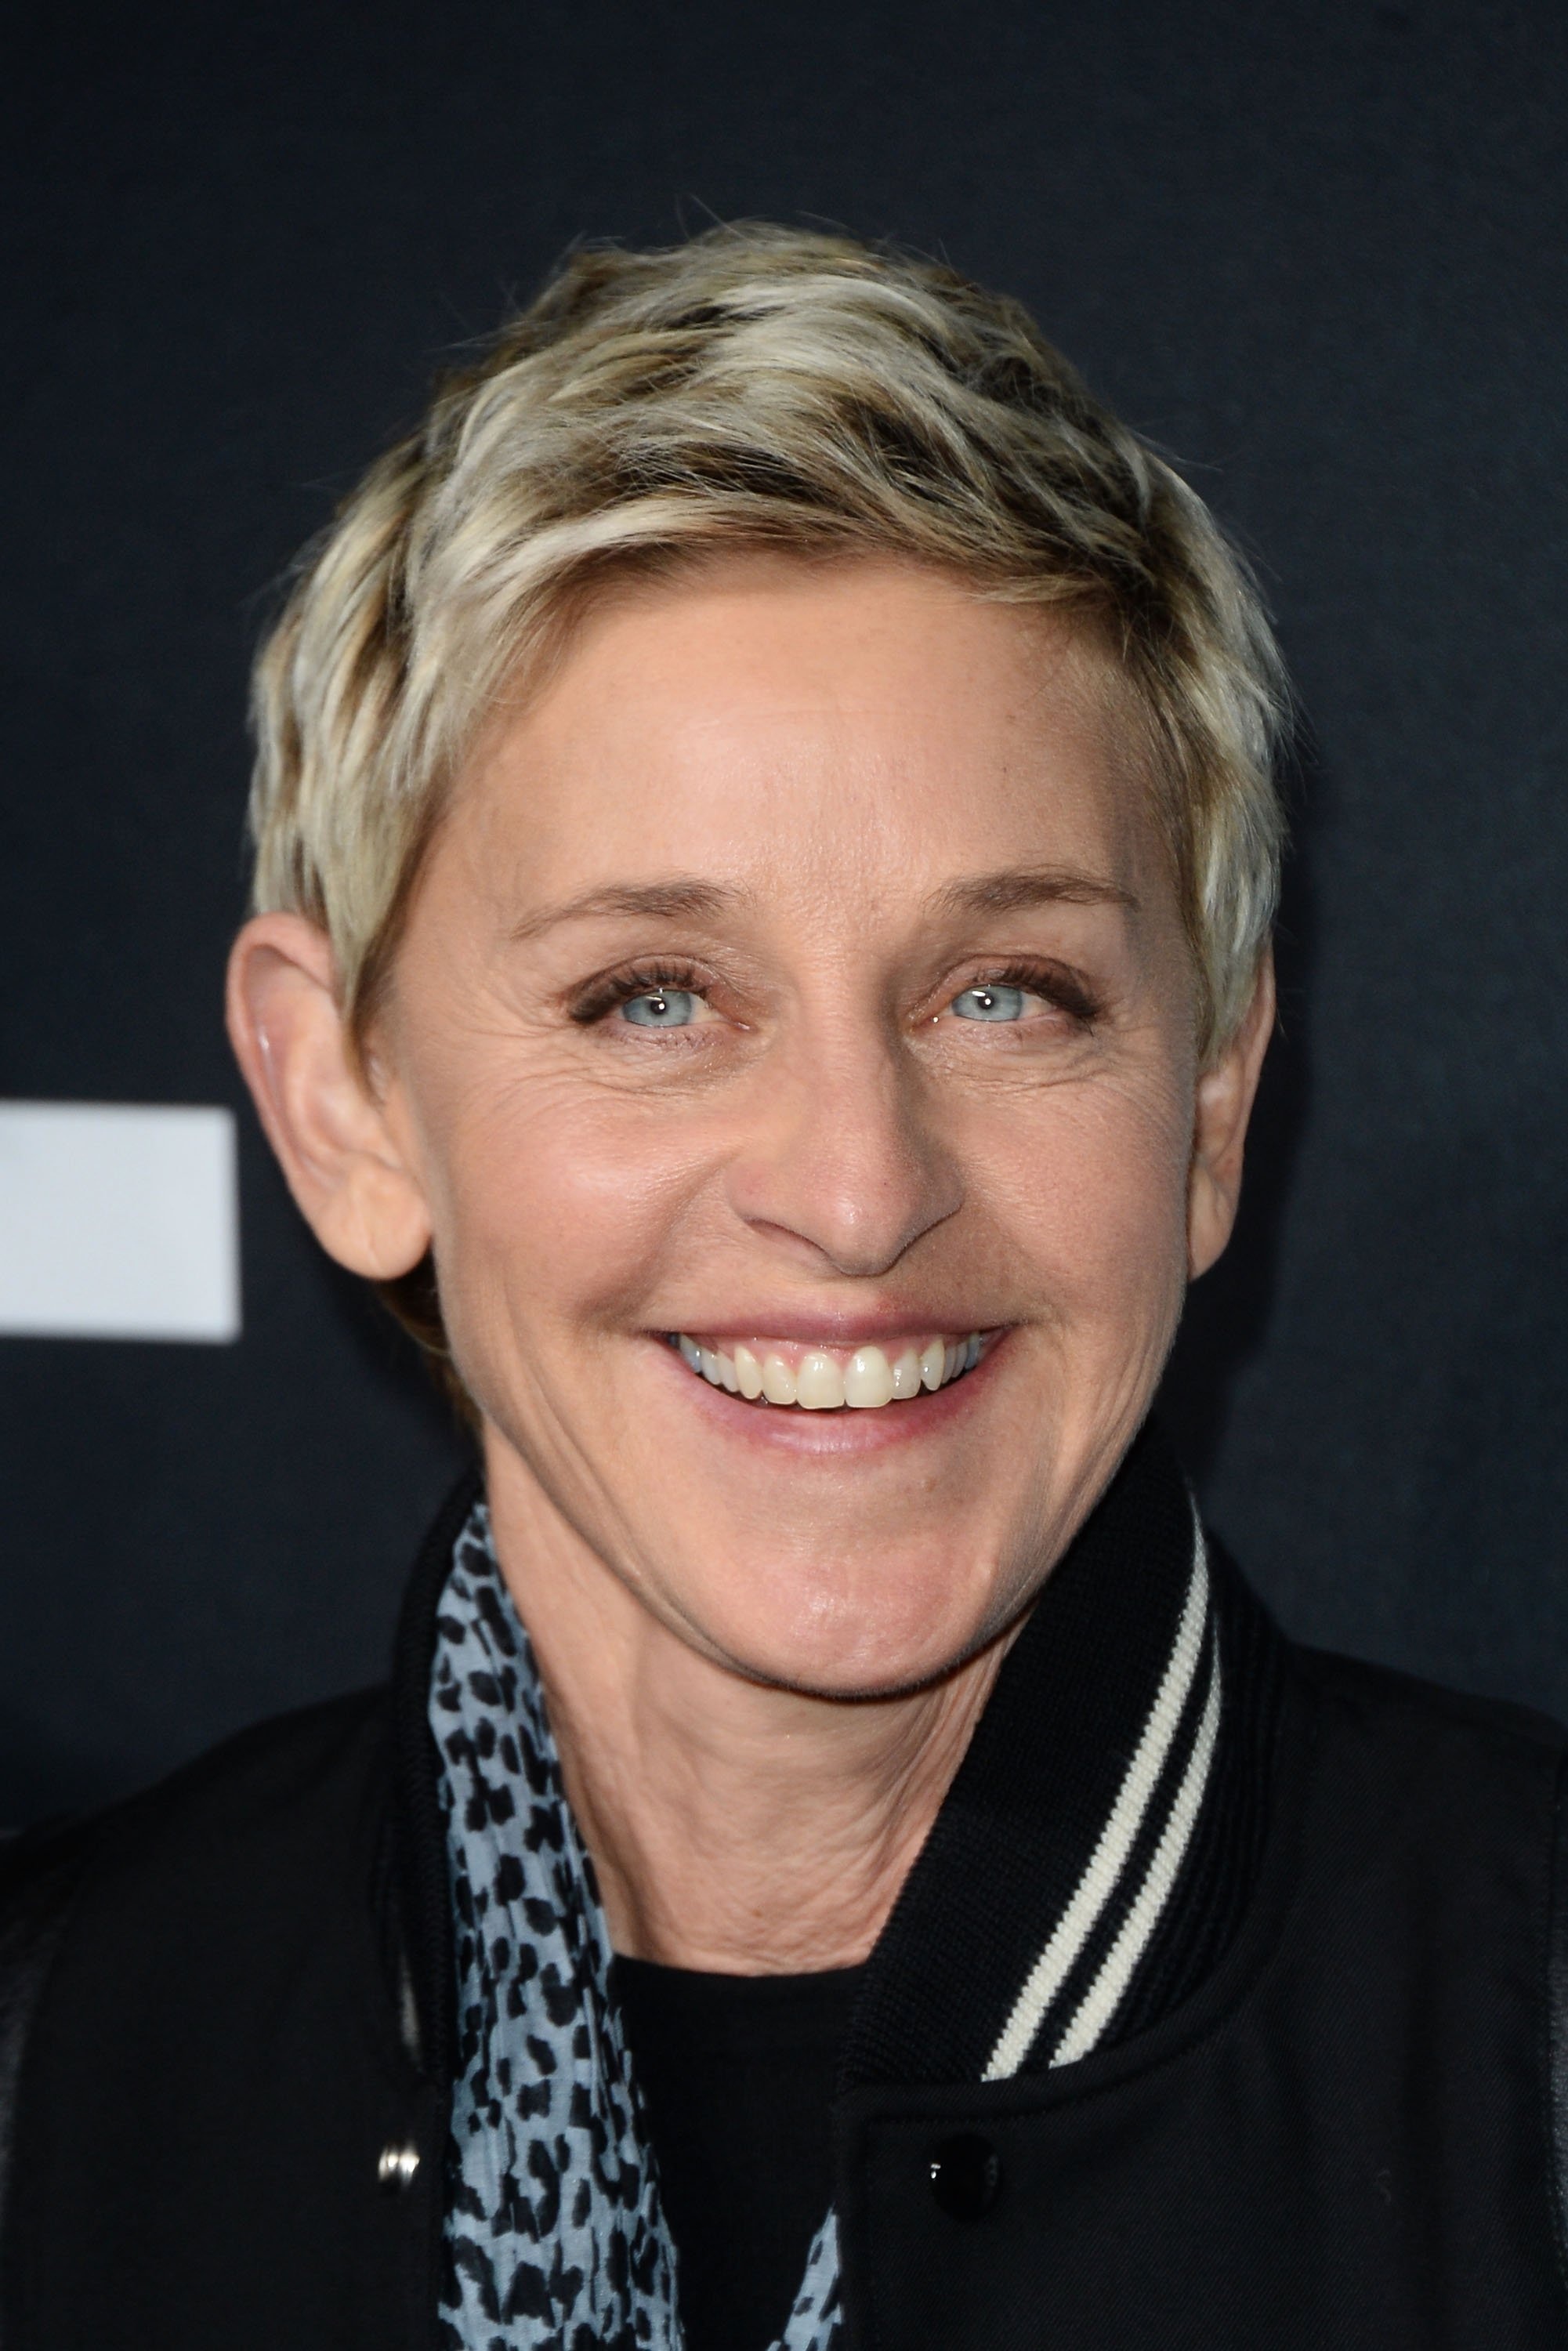 Ellen DeGeneres arrives at the Saint Laurent show at the Hollywood Palladium on February 10, 2016 in Los Angeles, California | Photo: Getty Images